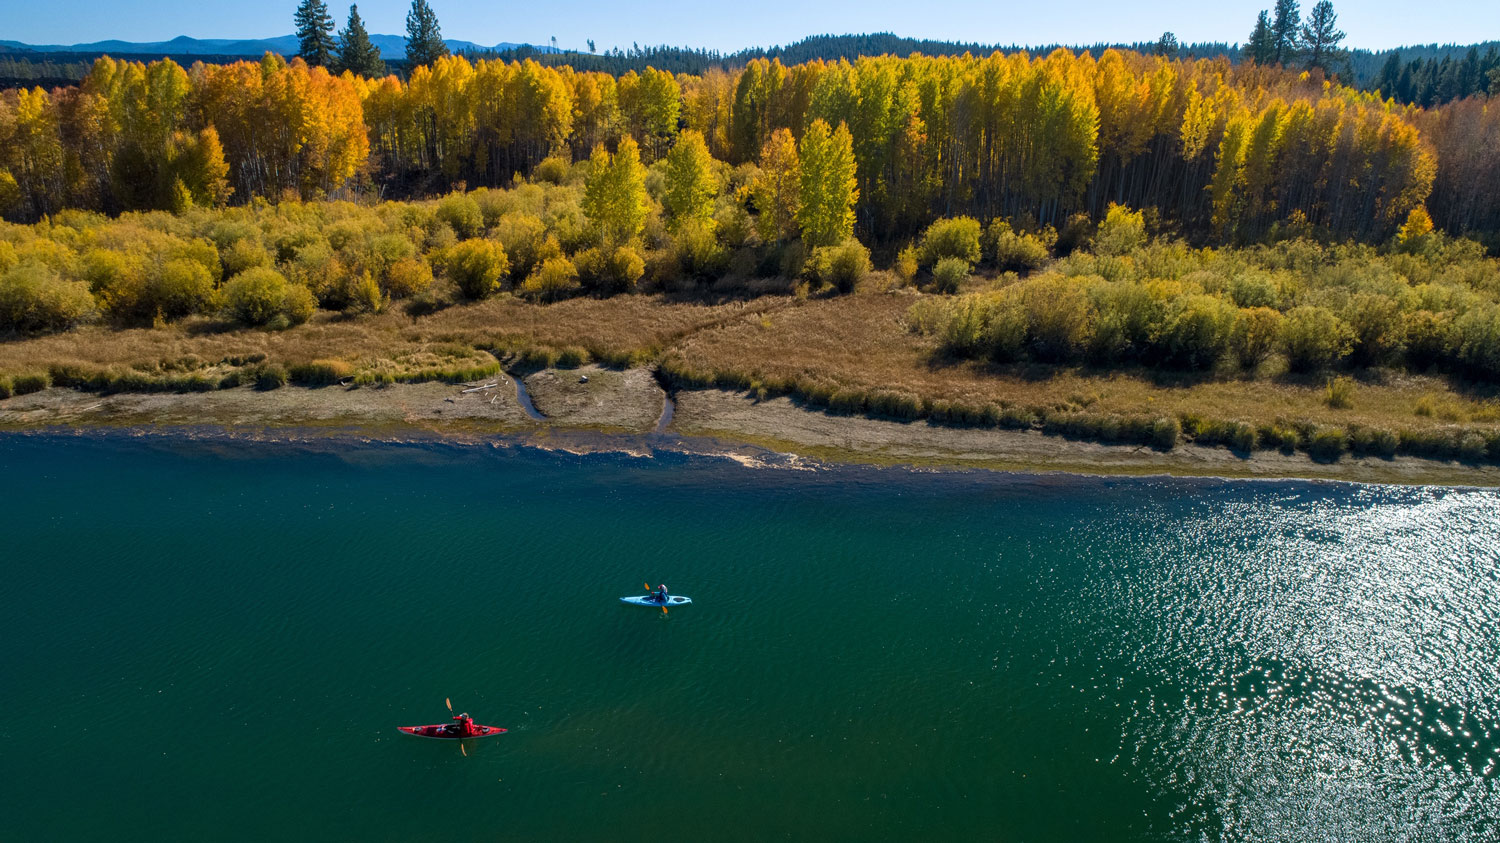 People lackadaisically kayaking down the calm Deschutes River